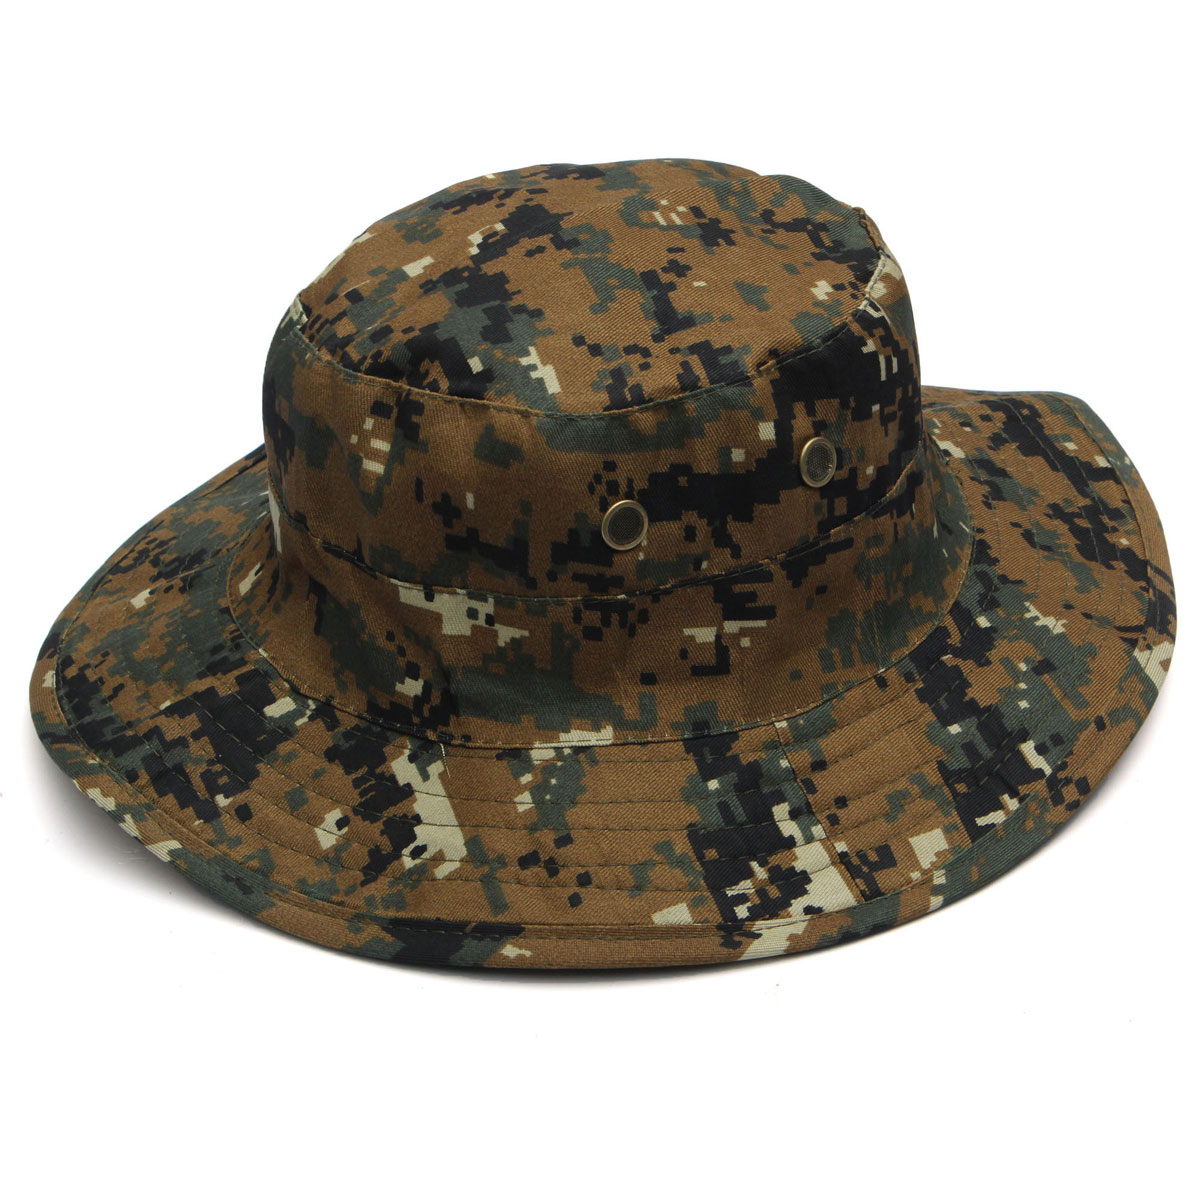 Bucket hat boonie hunting fishing outdoor cap wide brim for Camo fishing hat